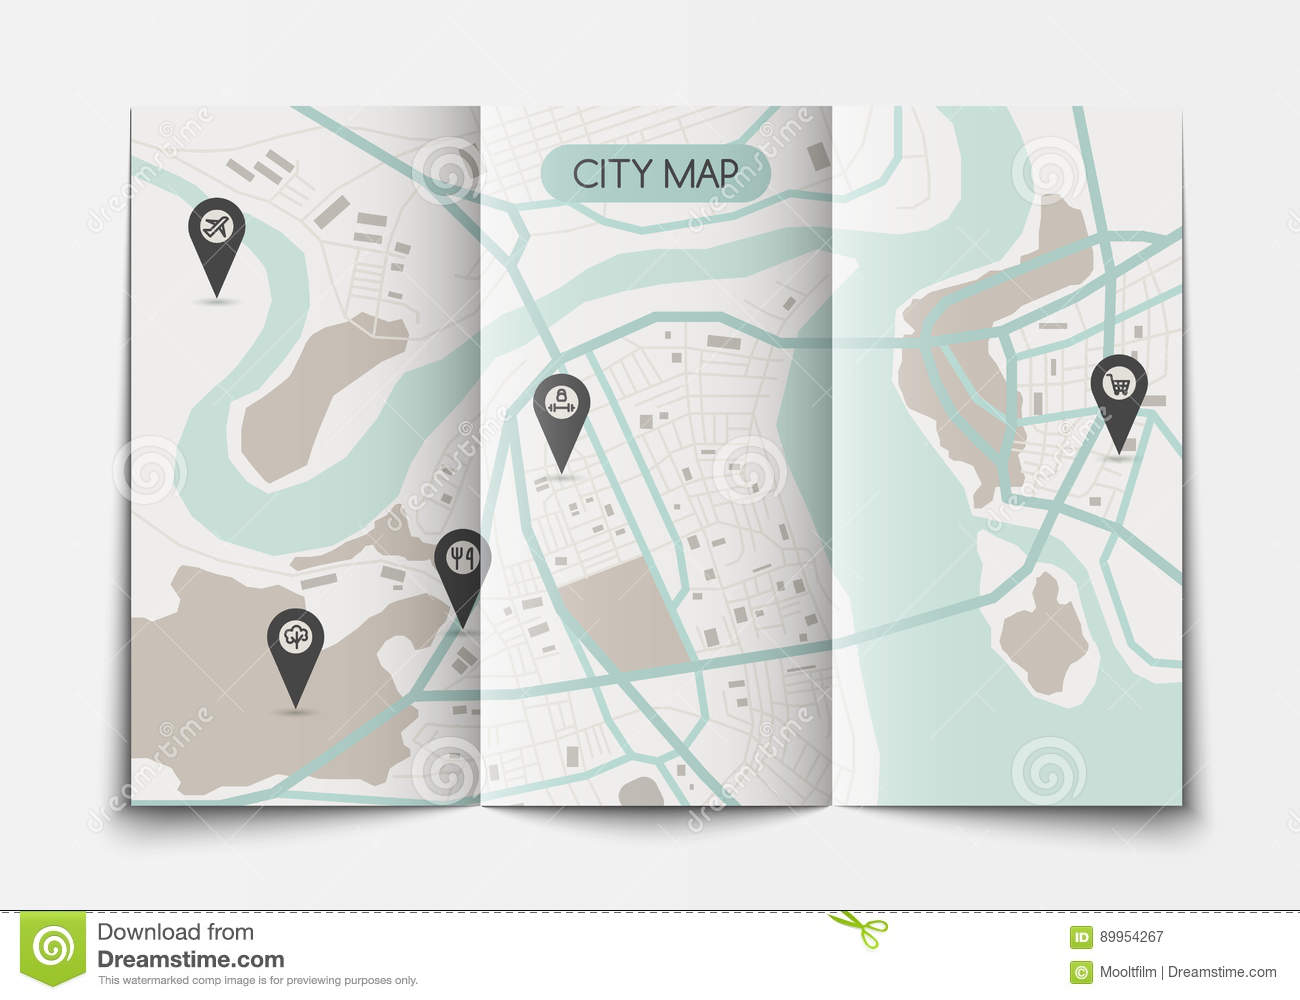 Open paper city map stock vector. Illustration of paper - 89954267